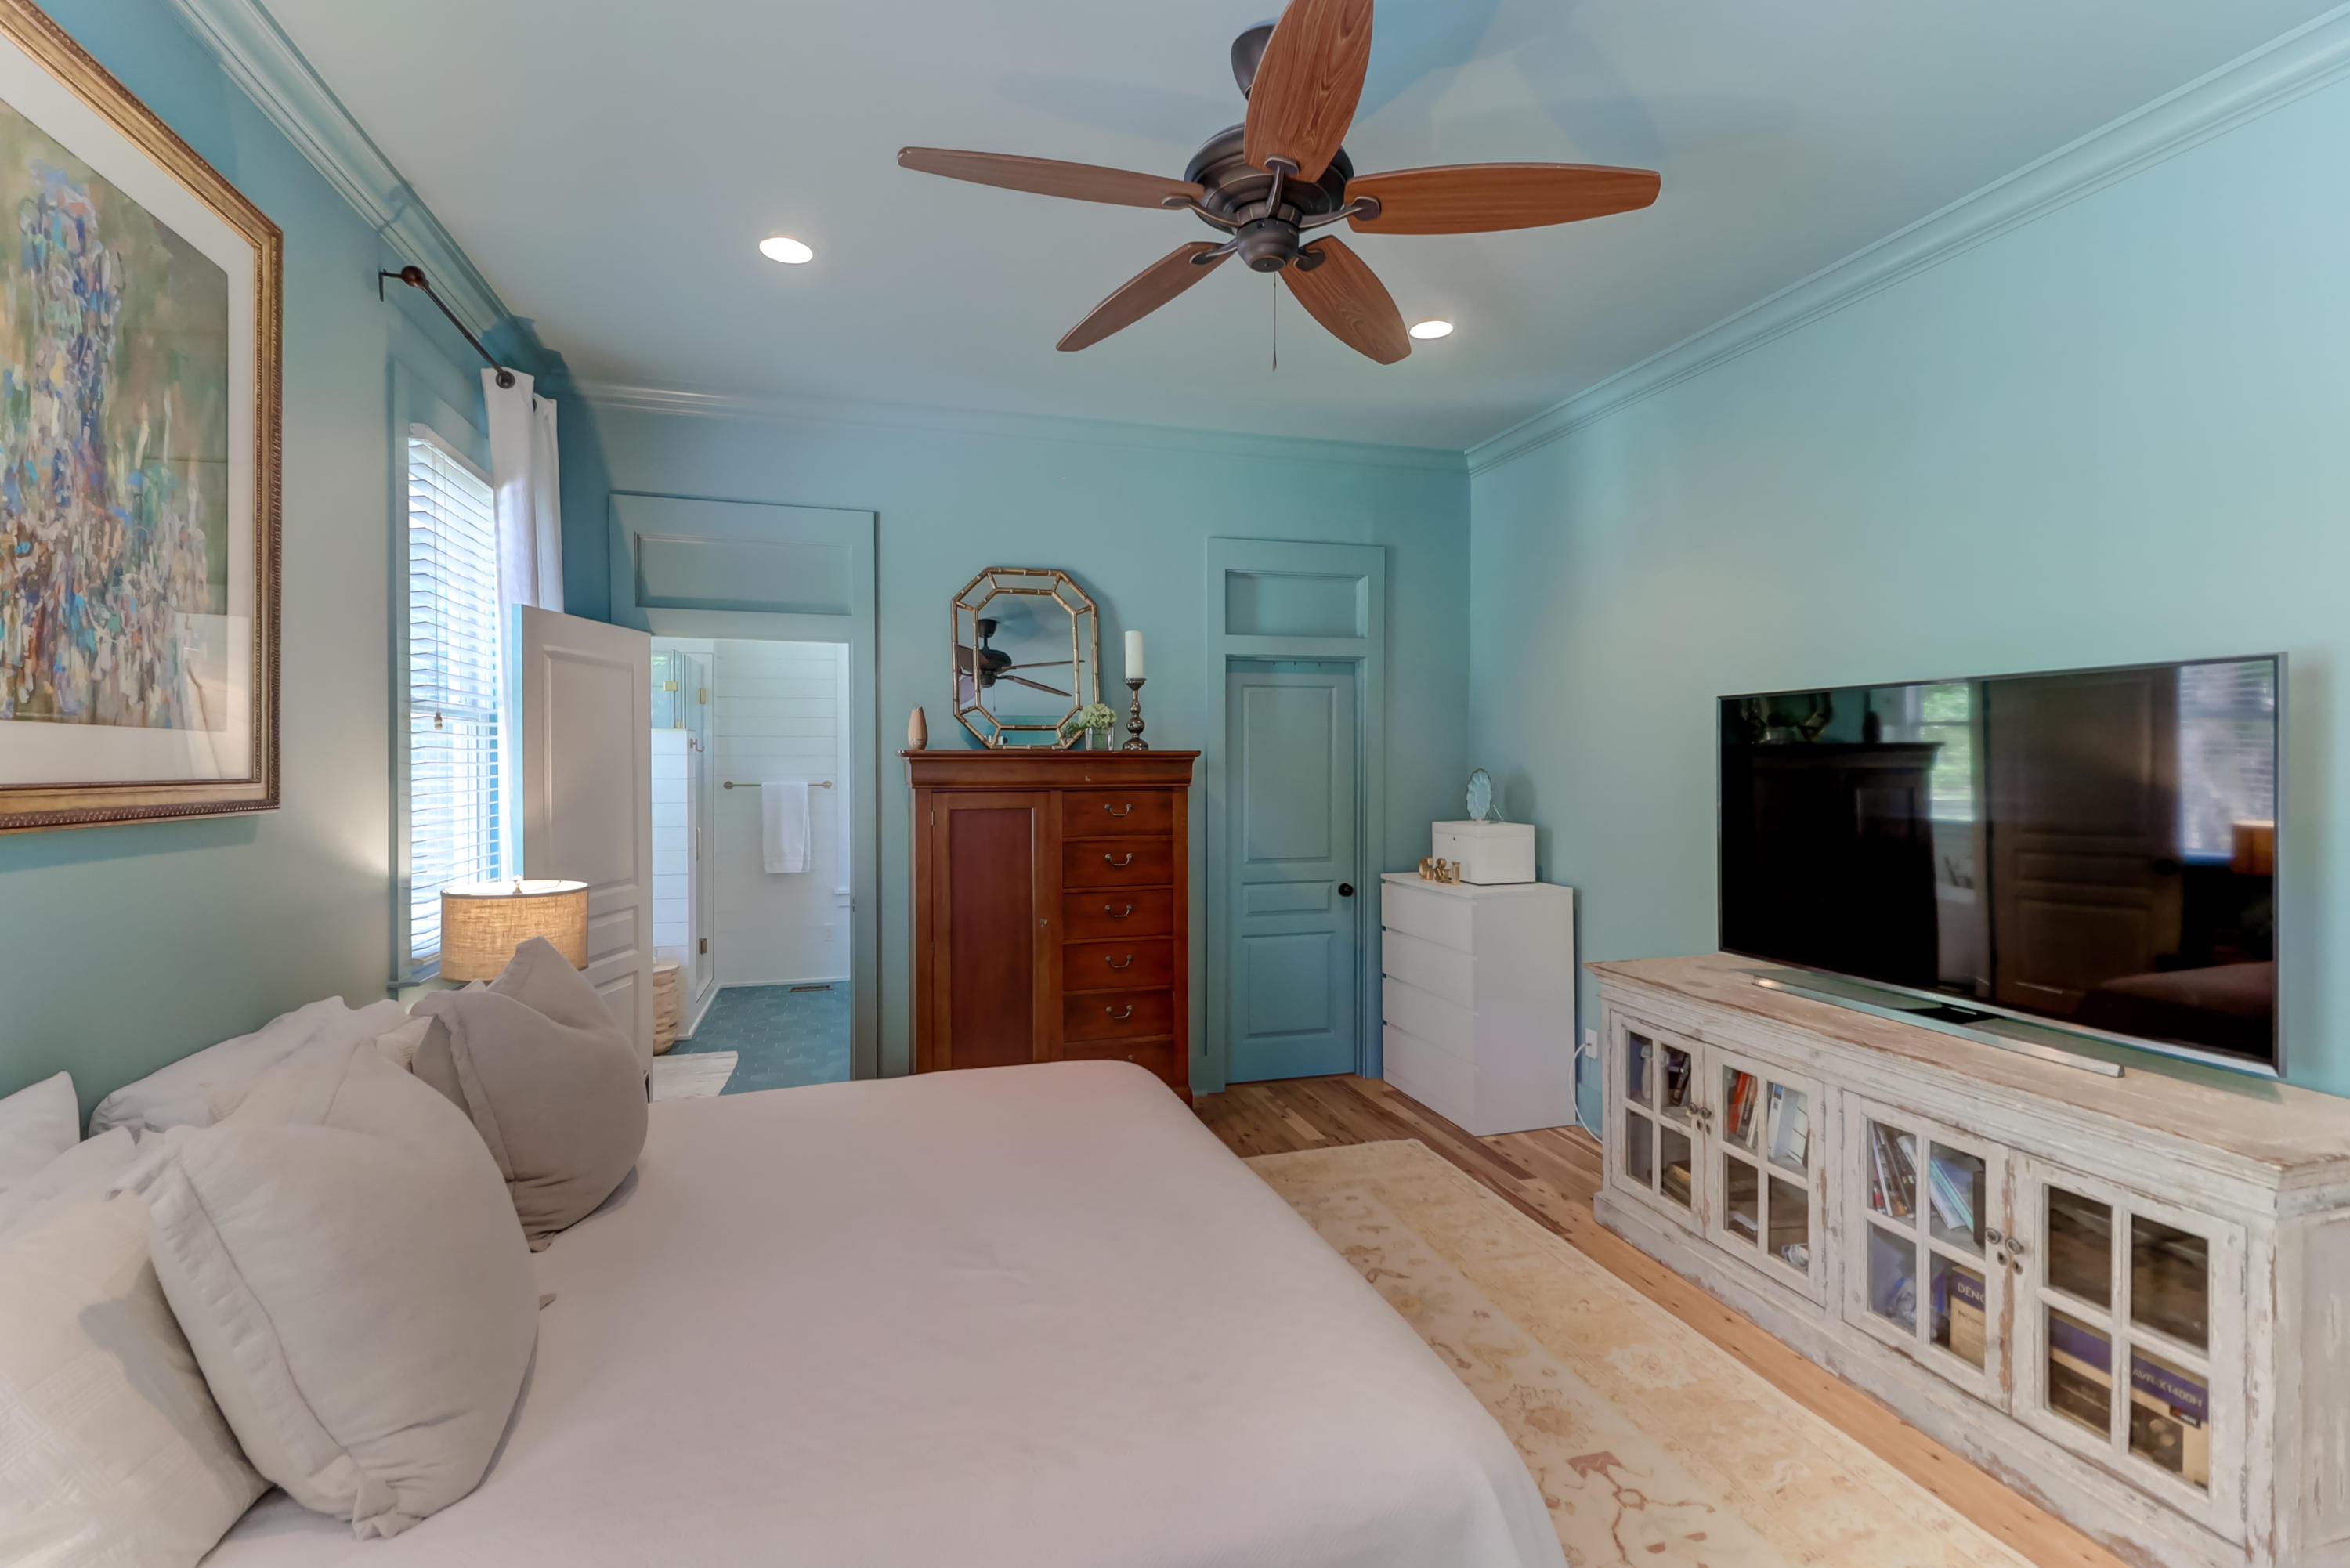 The Villages In St Johns Woods Homes For Sale - 5056 Coral Reef Dr, Johns Island, SC - 22